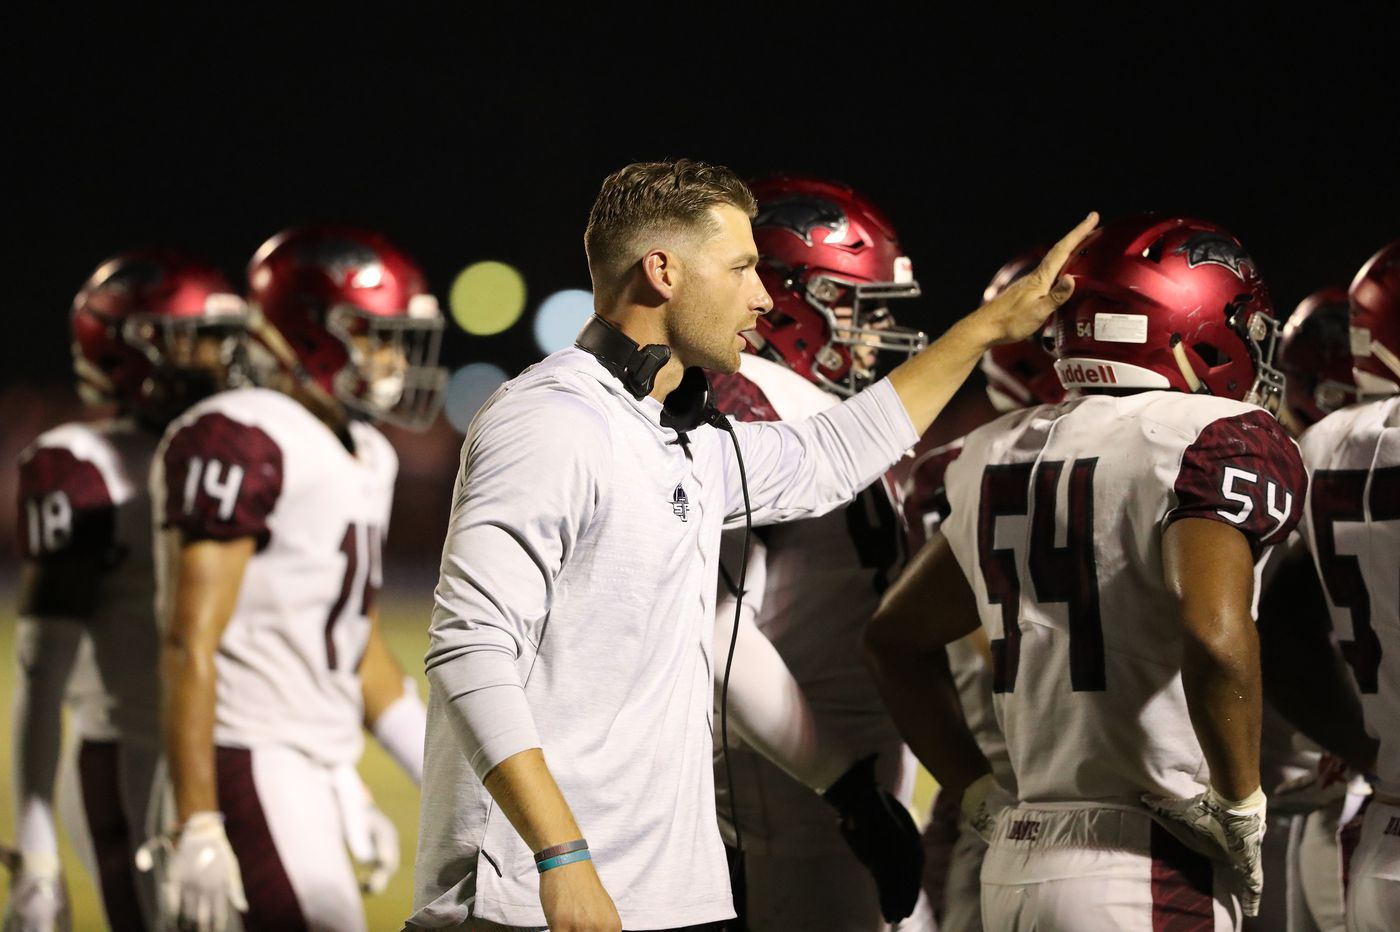 St. Joseph's Prep football coach Tim Roken to lead All-American Bowl East team in San Antonio